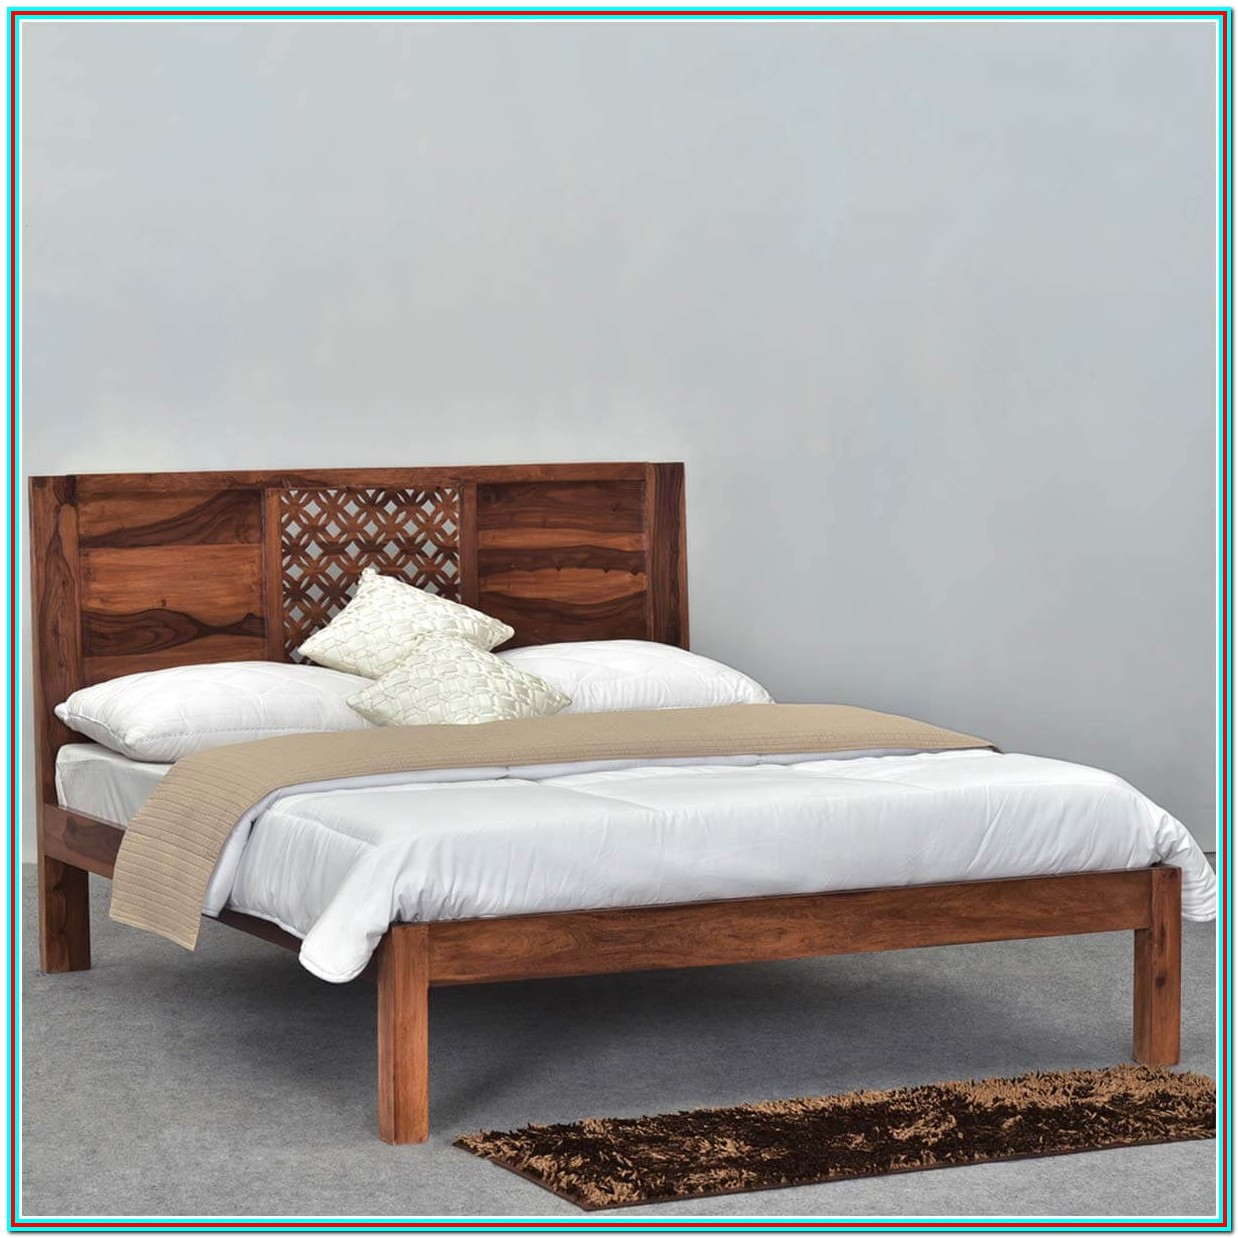 Rustic Wood Platform Bed Frame